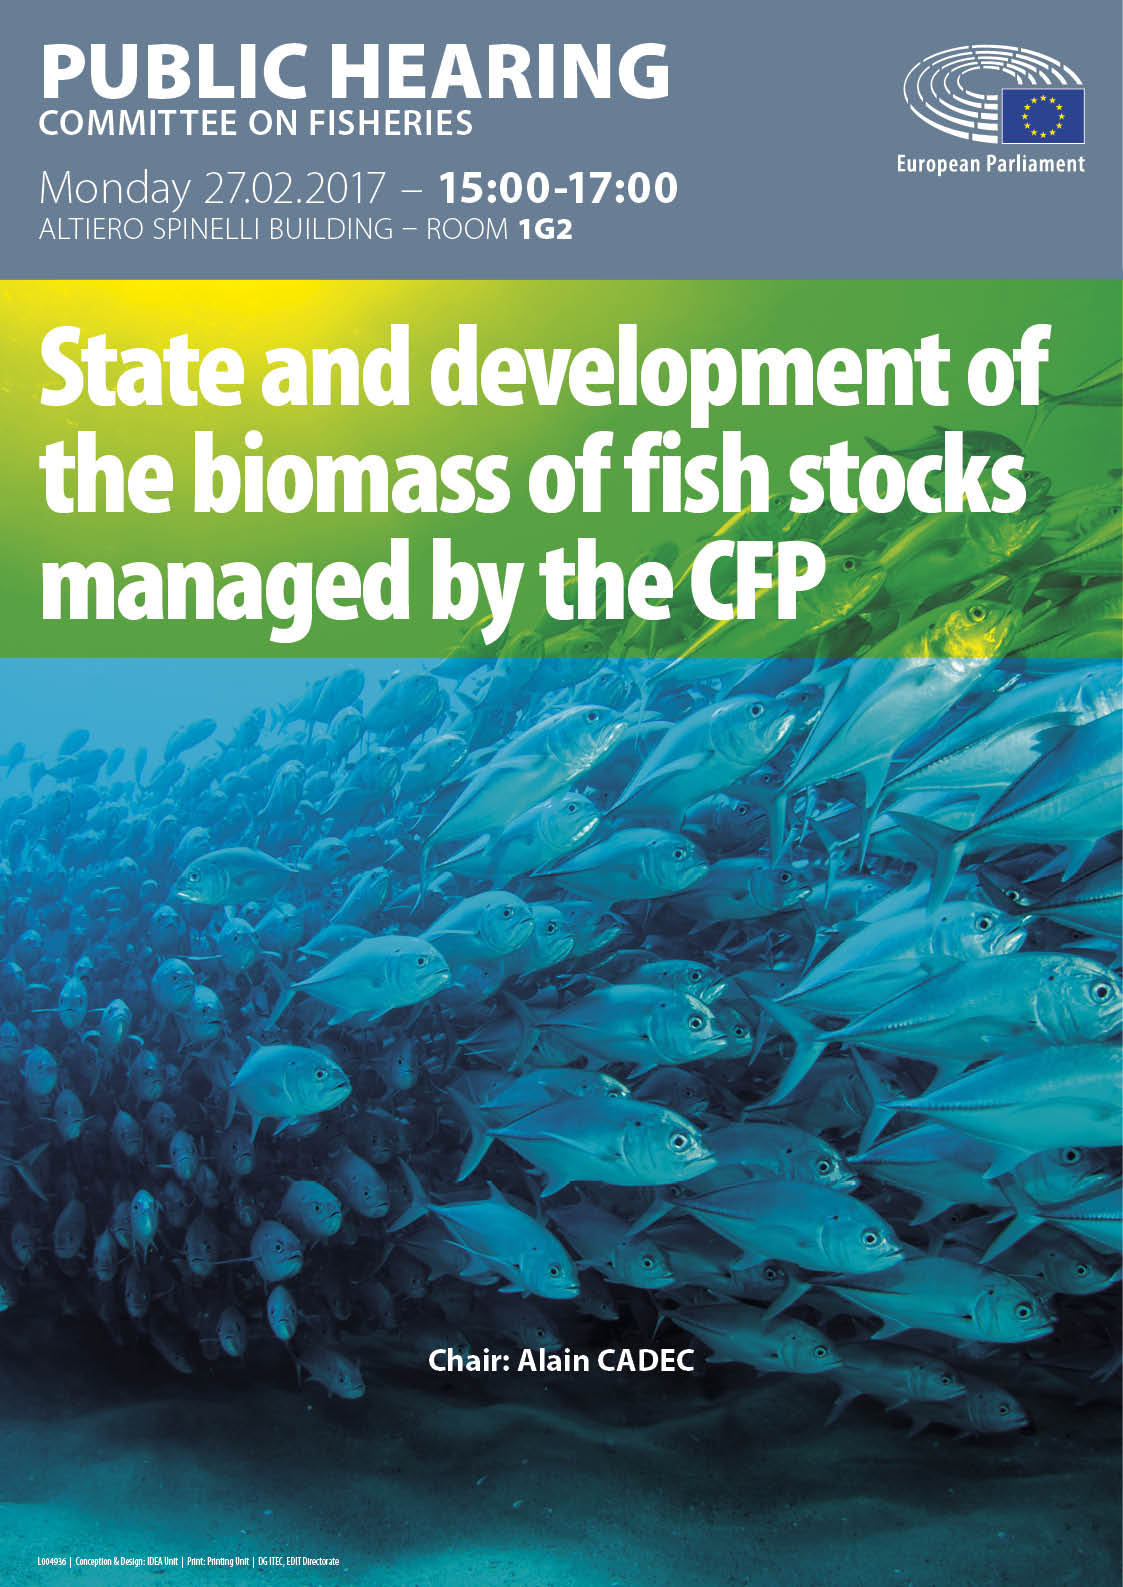 Poster for public hearing on State and development of the biomass of fish stocks managed by the CFP in EN